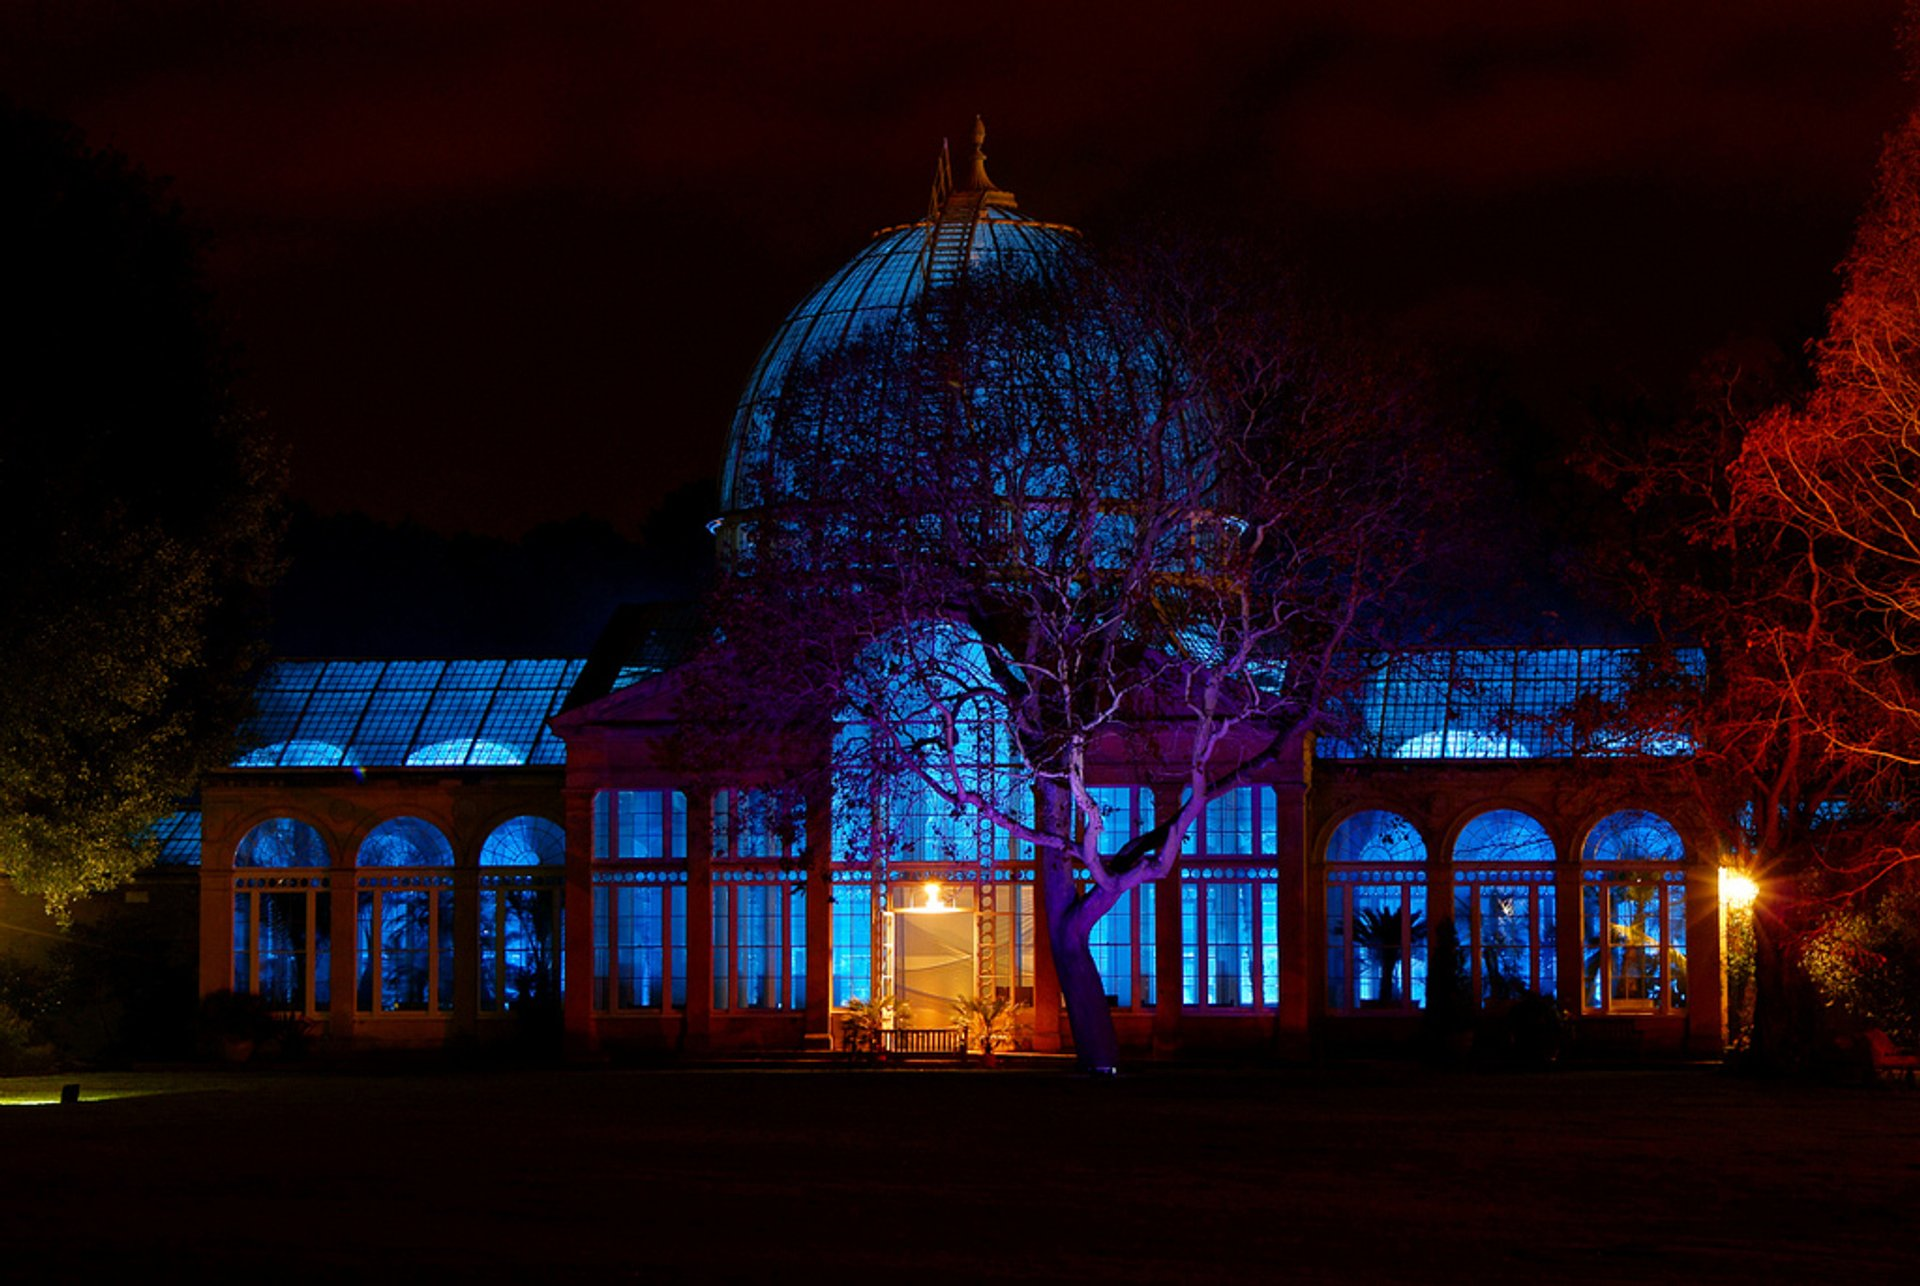 Best time to see Enchanted Woodland at Syon Park in London 2019